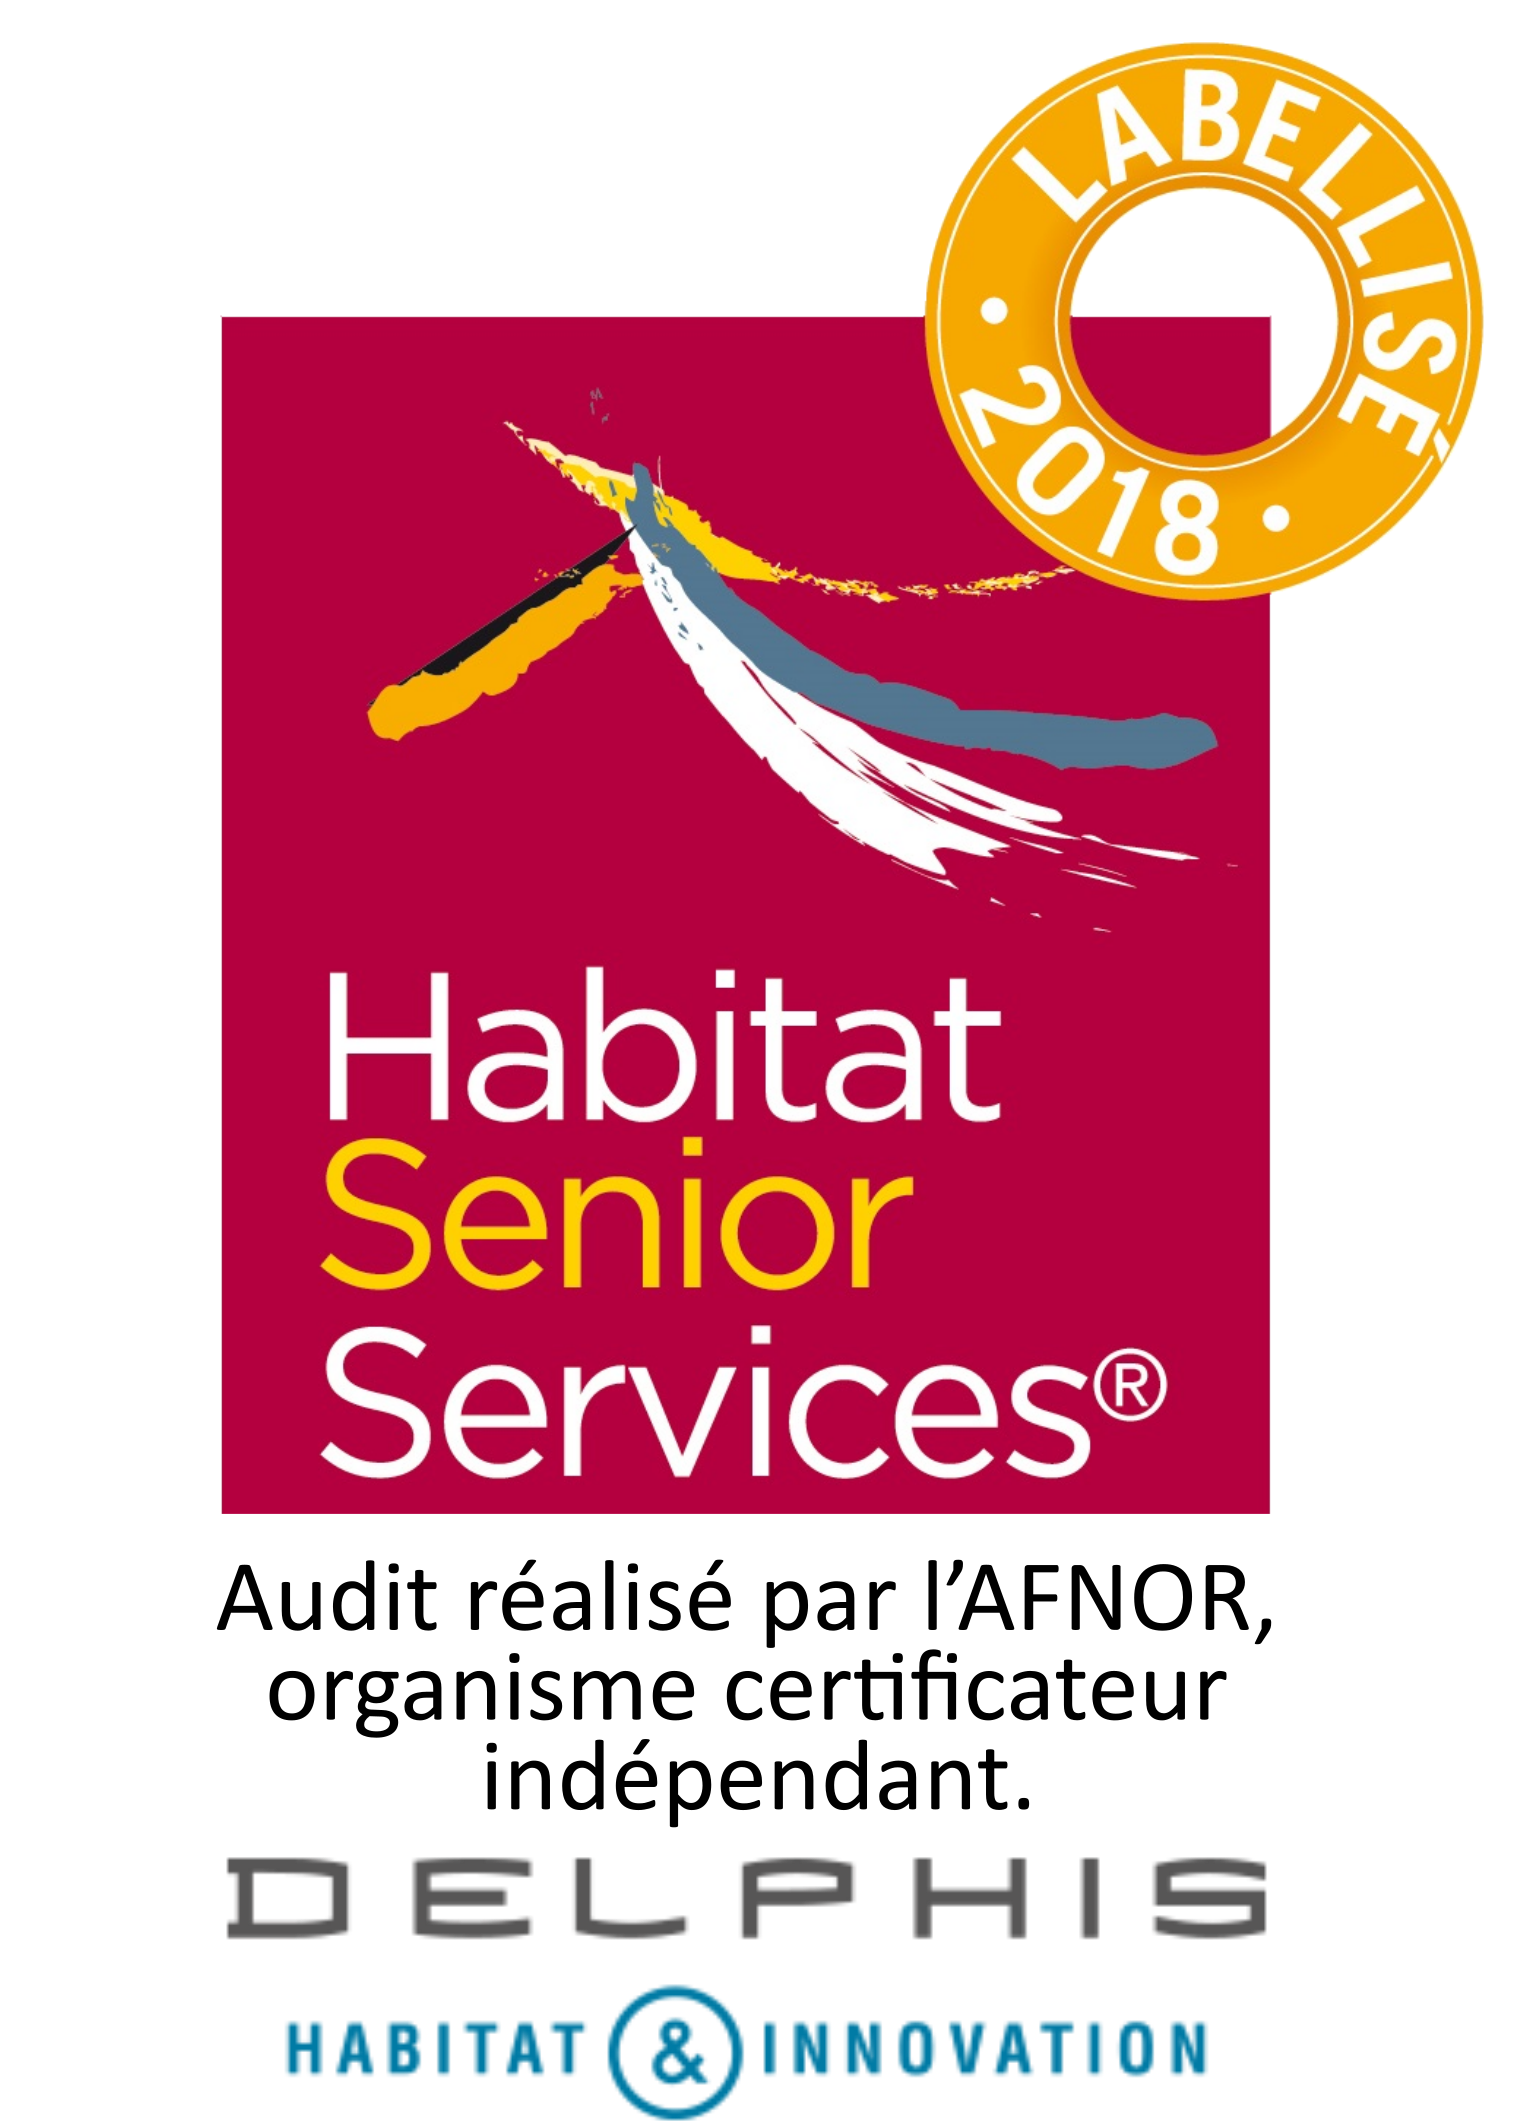 Habitat Sénior Services